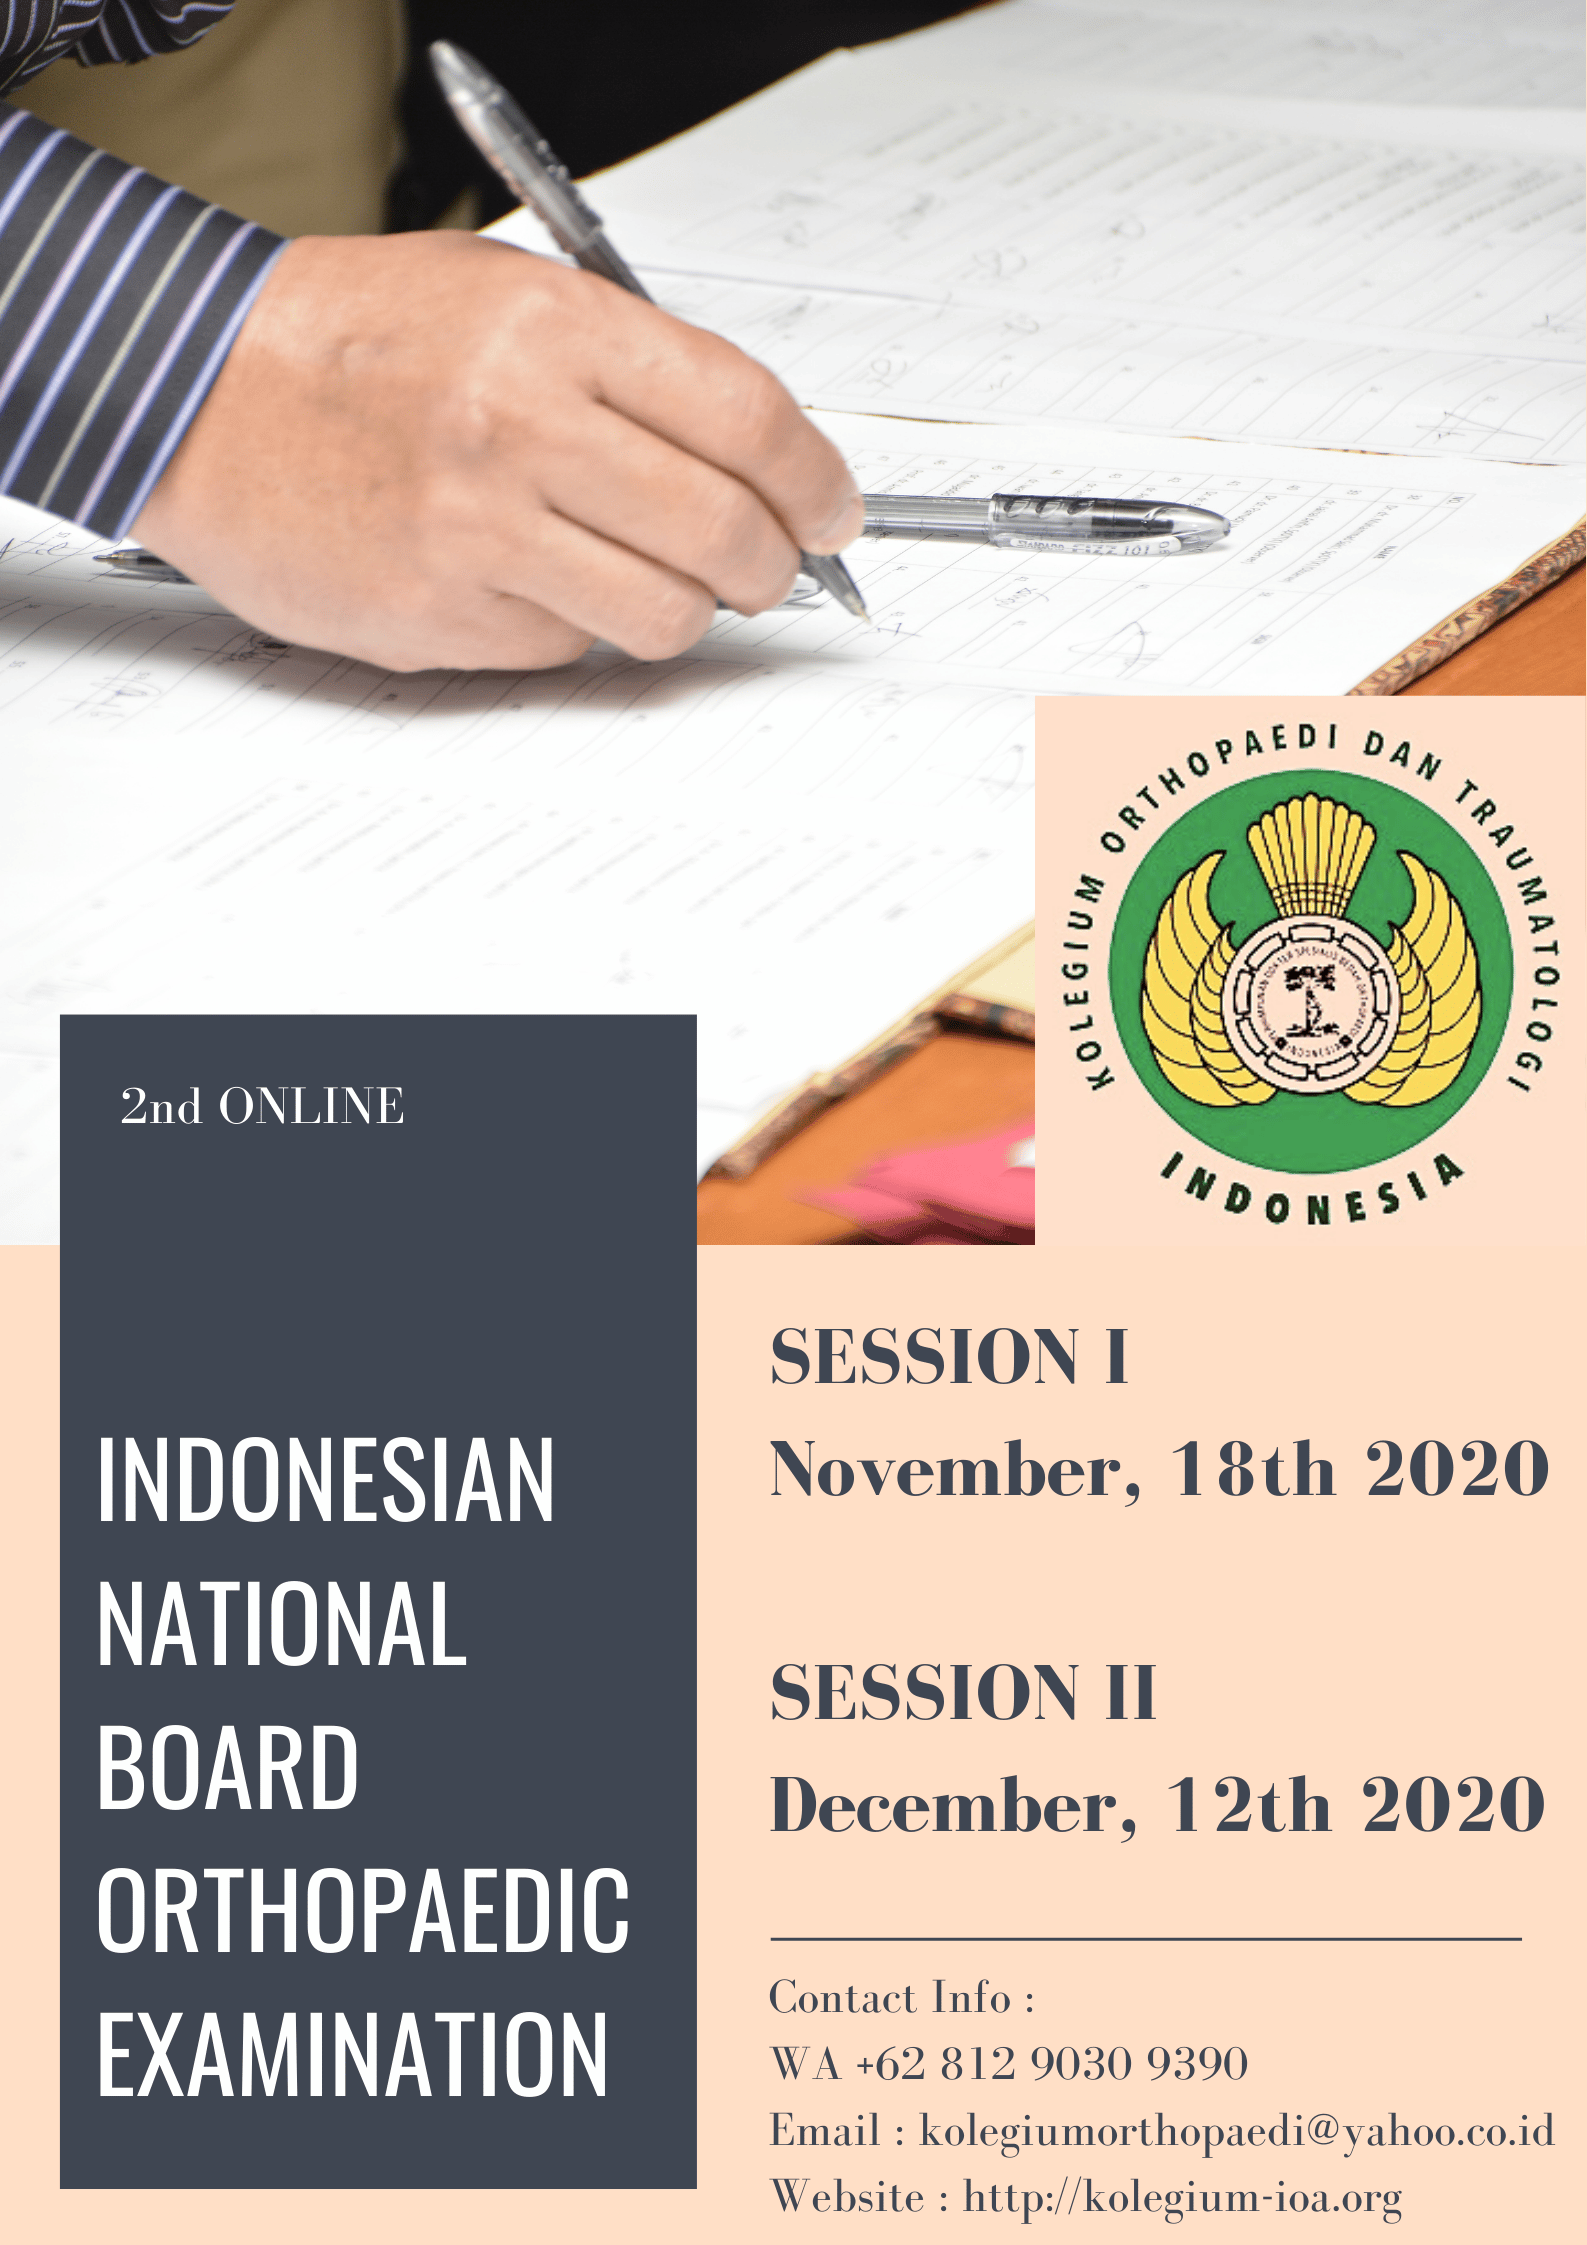 INDONESIAN NATIONAL BOARD ORTHOPAEDIC EXAMINATION – 2nd ONLINE November – December 2020